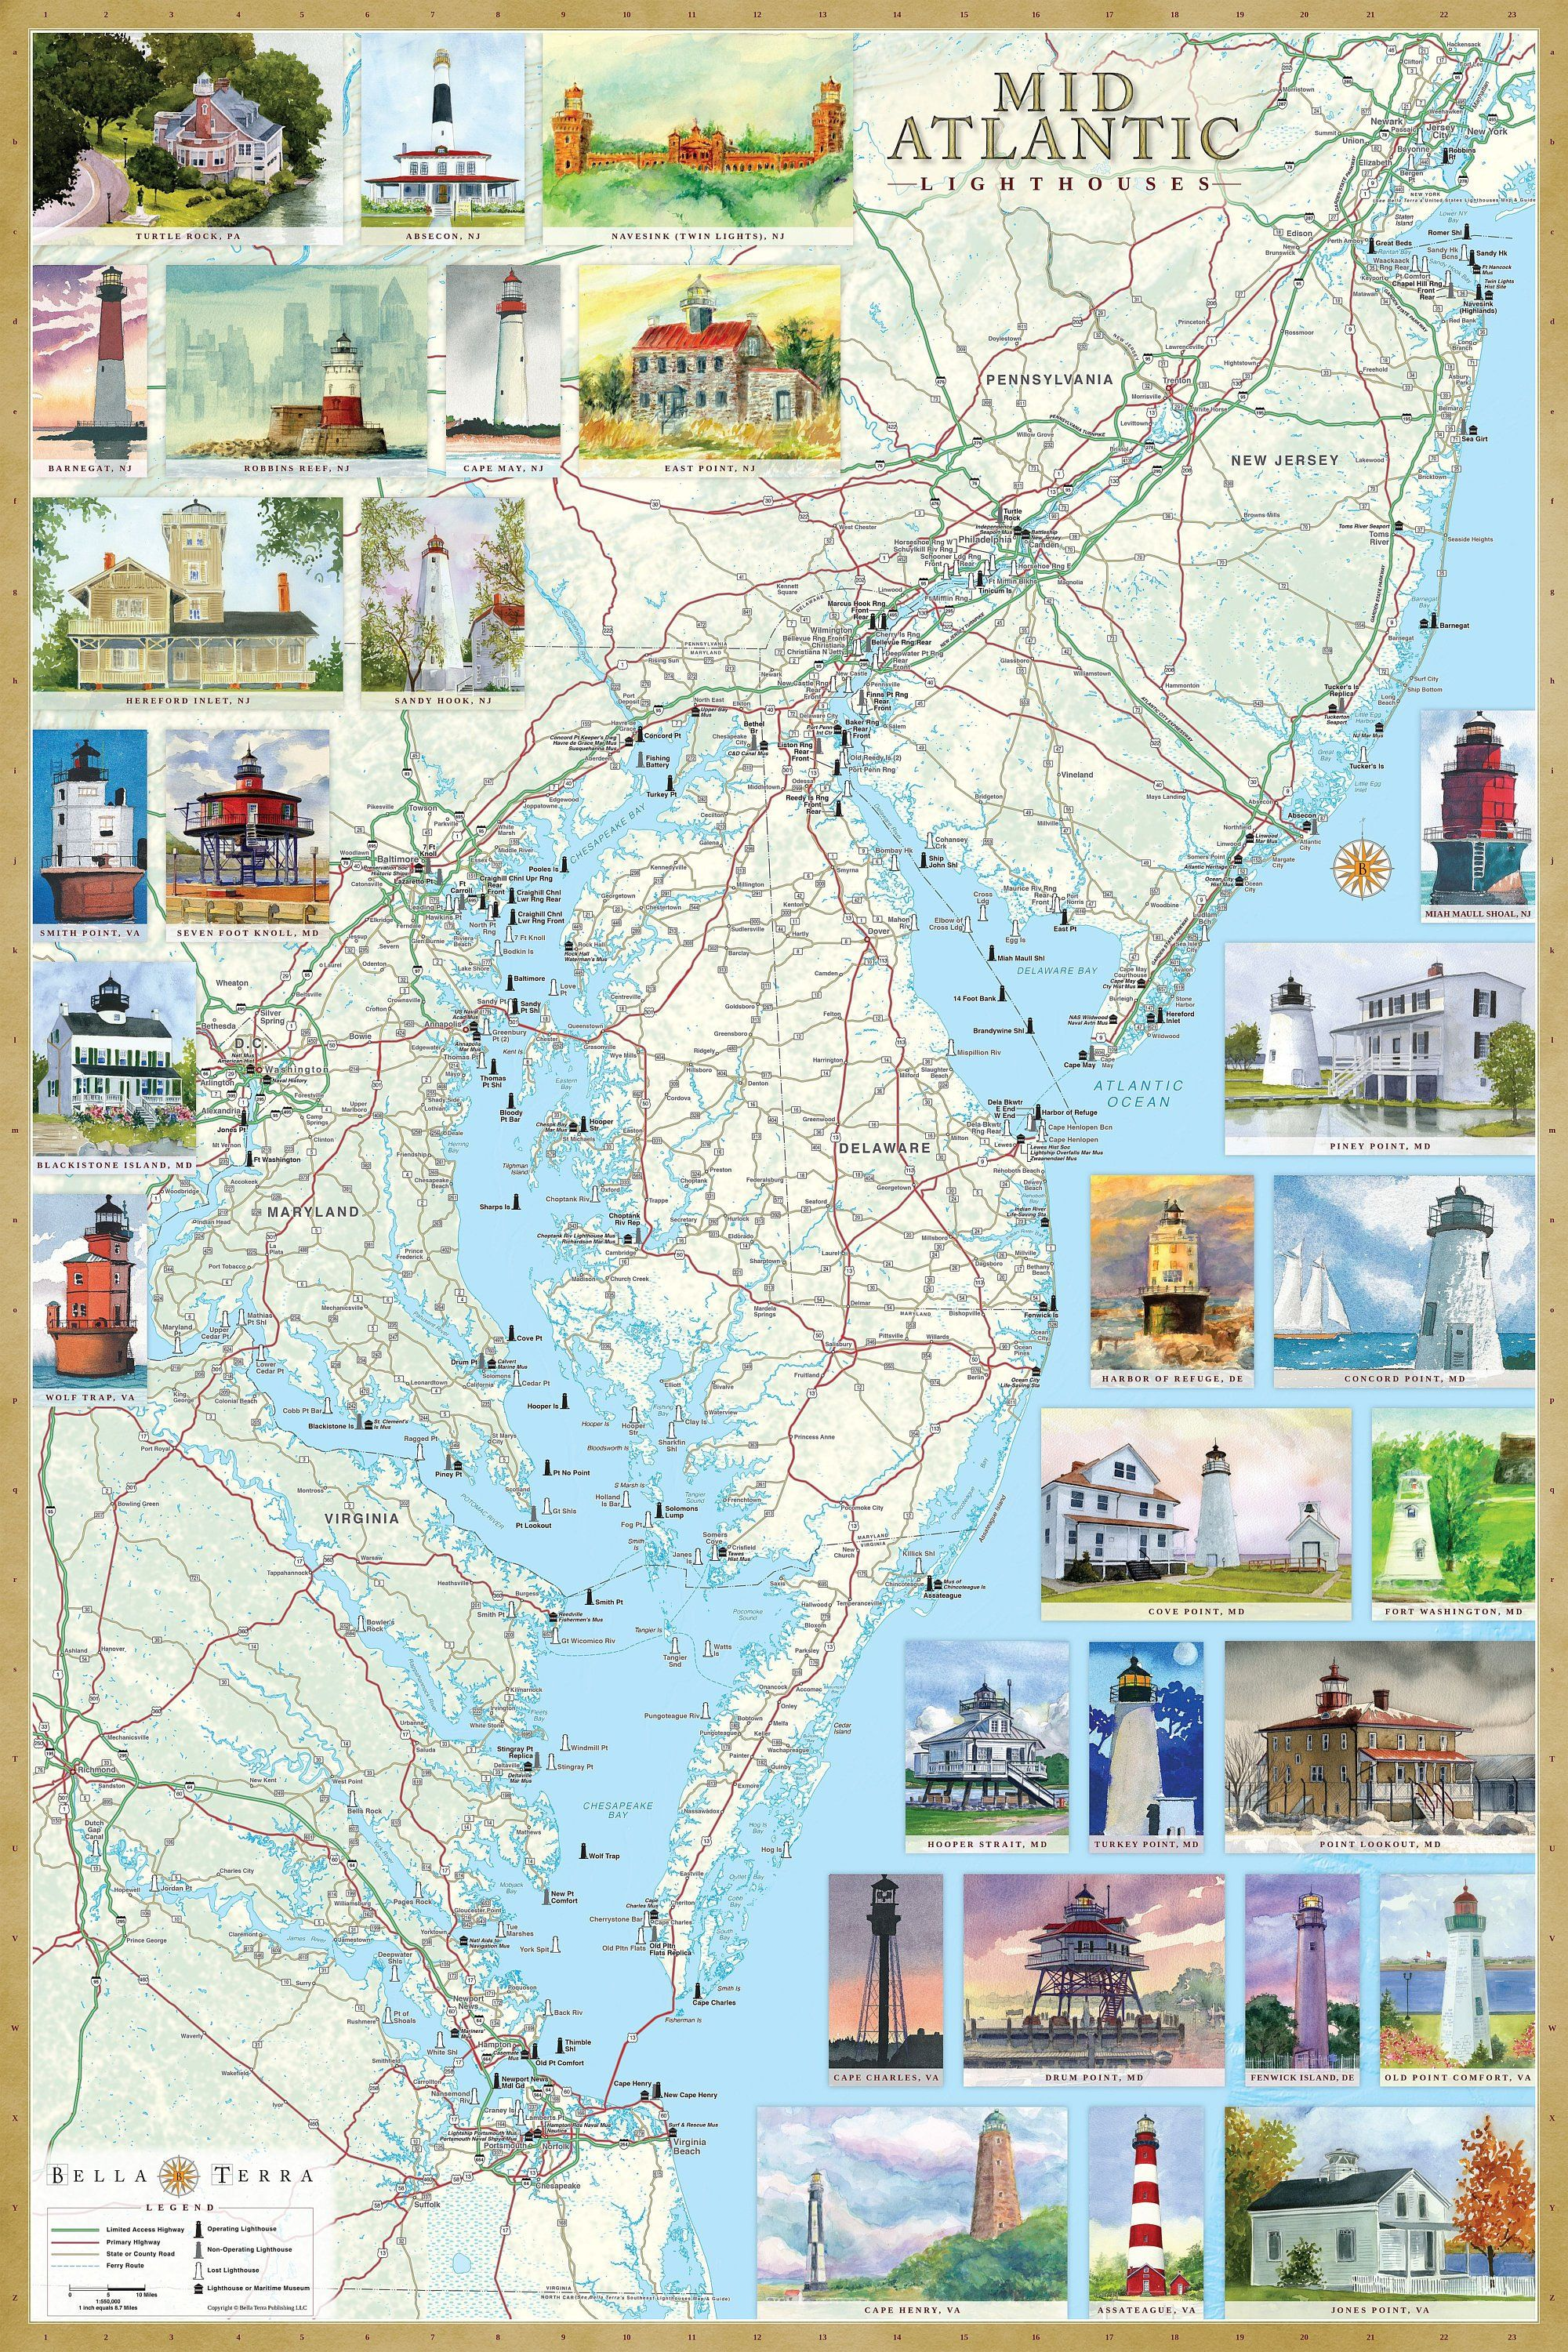 Mid Atlantic Lighthouses Illustrated Map Poster Usa East Etsy In 2021 Illustrated Map East Coast Lighthouses Lighthouse